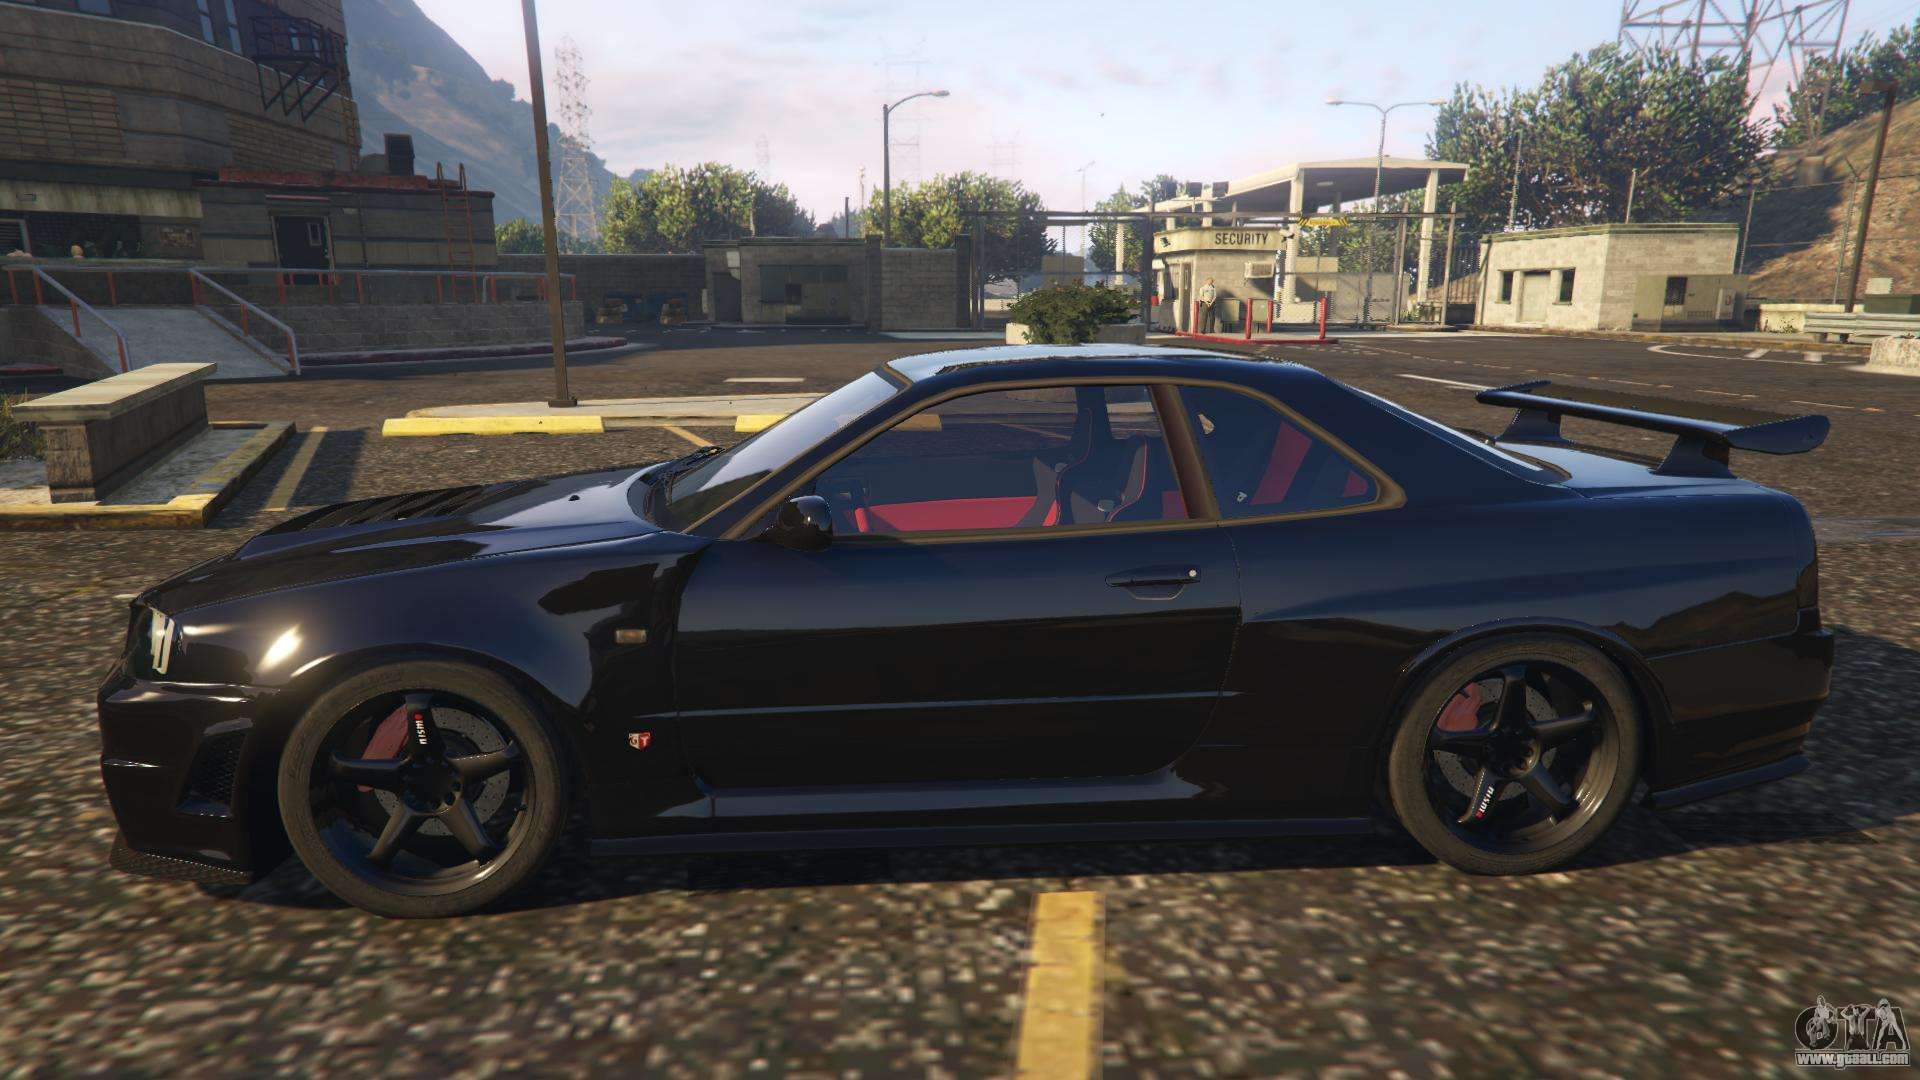 Nissan skyline nismo z tune 2005 for gta 5 gta 5 nissan skyline nismo z tune 2005 left side view vanachro Choice Image